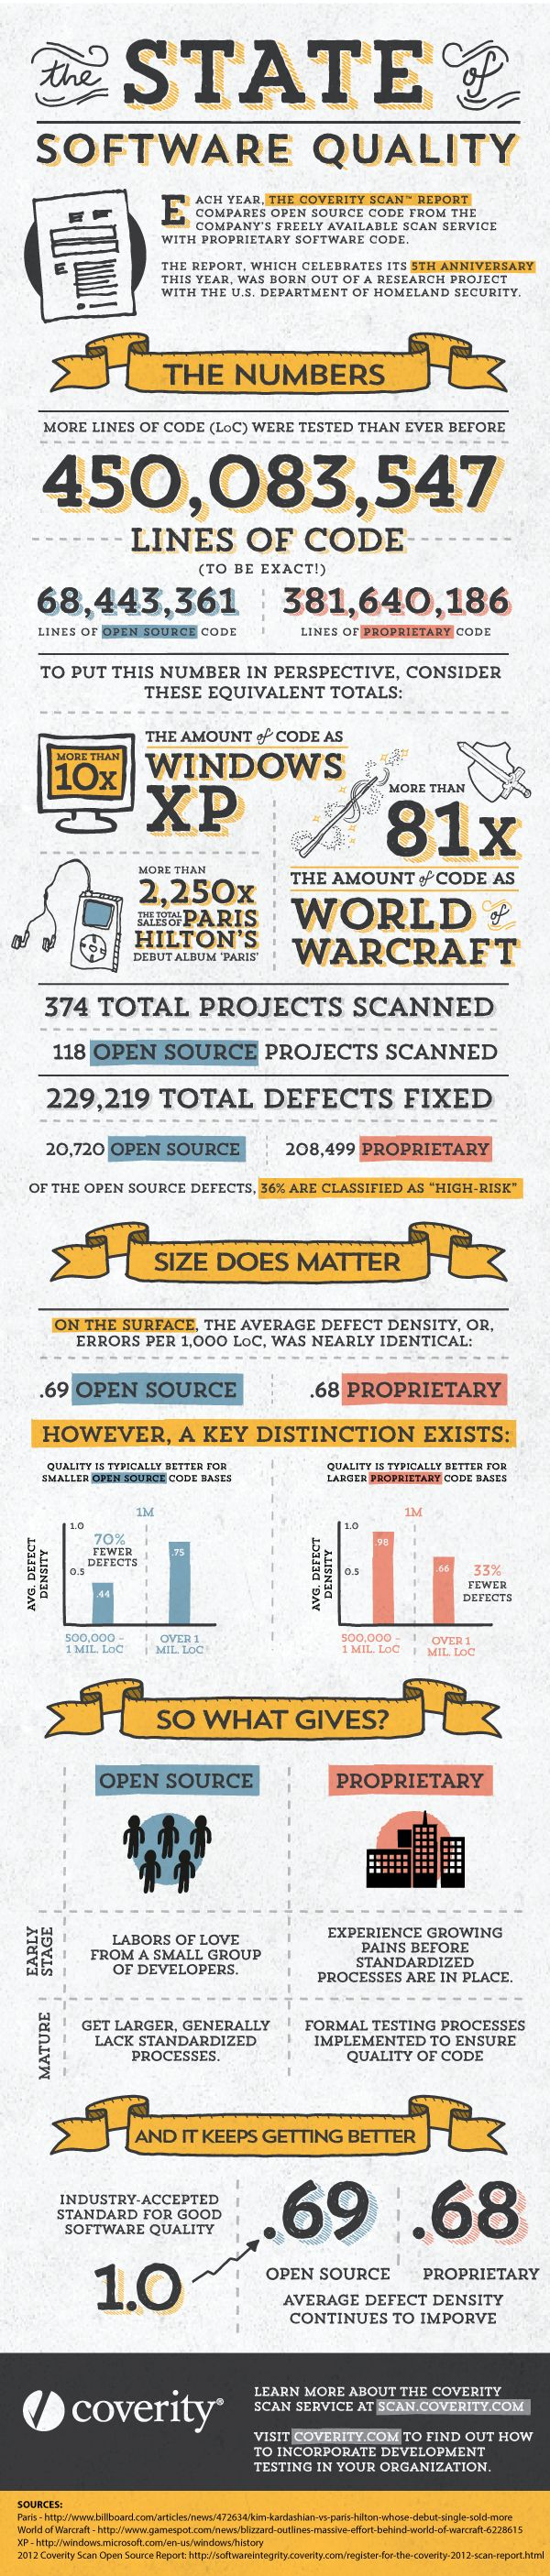 450M lines of code say large open source and small closed source software projects are worst quality